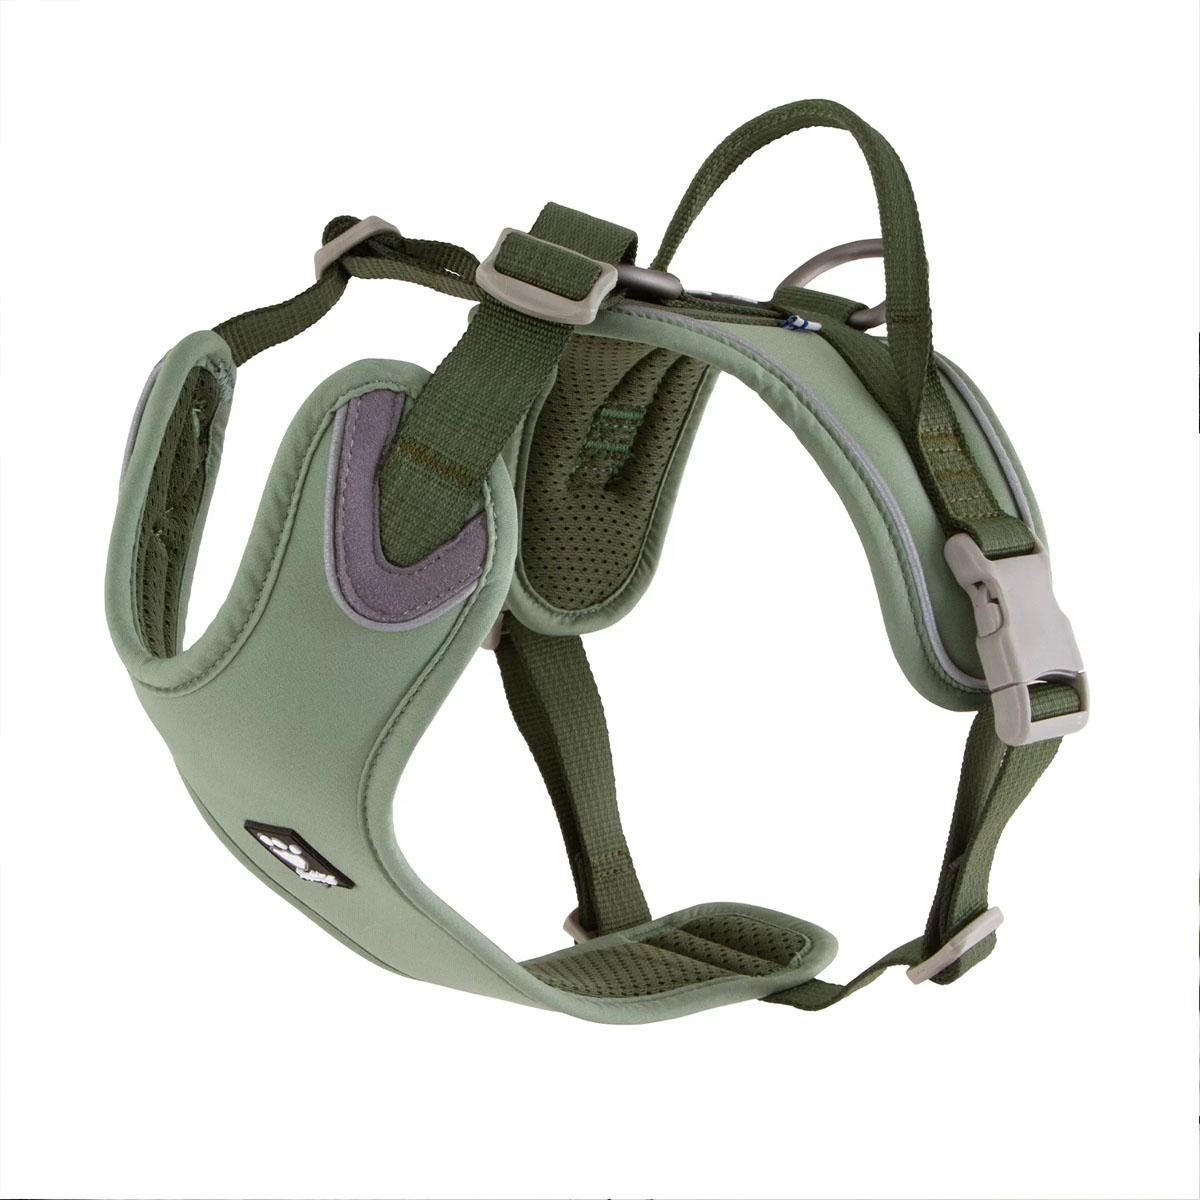 Hurtta Weekend Warrior ECO Dog Harness - Hedge